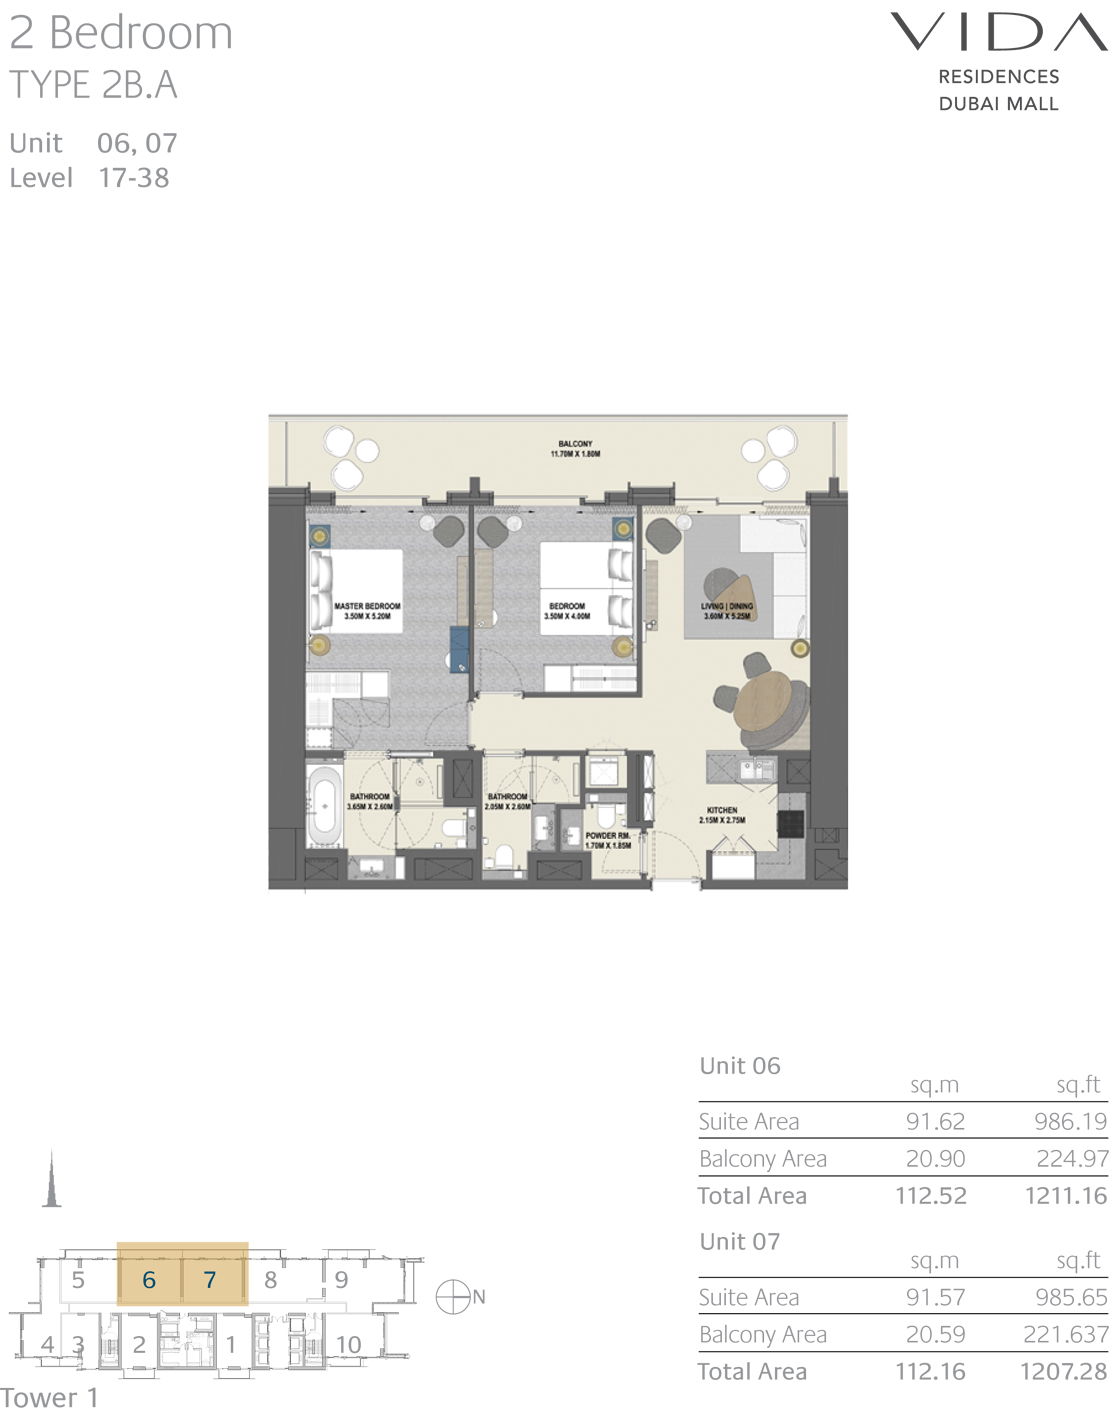 2 Bedroom Type 2B.A Unit 06,07 Level 17-38